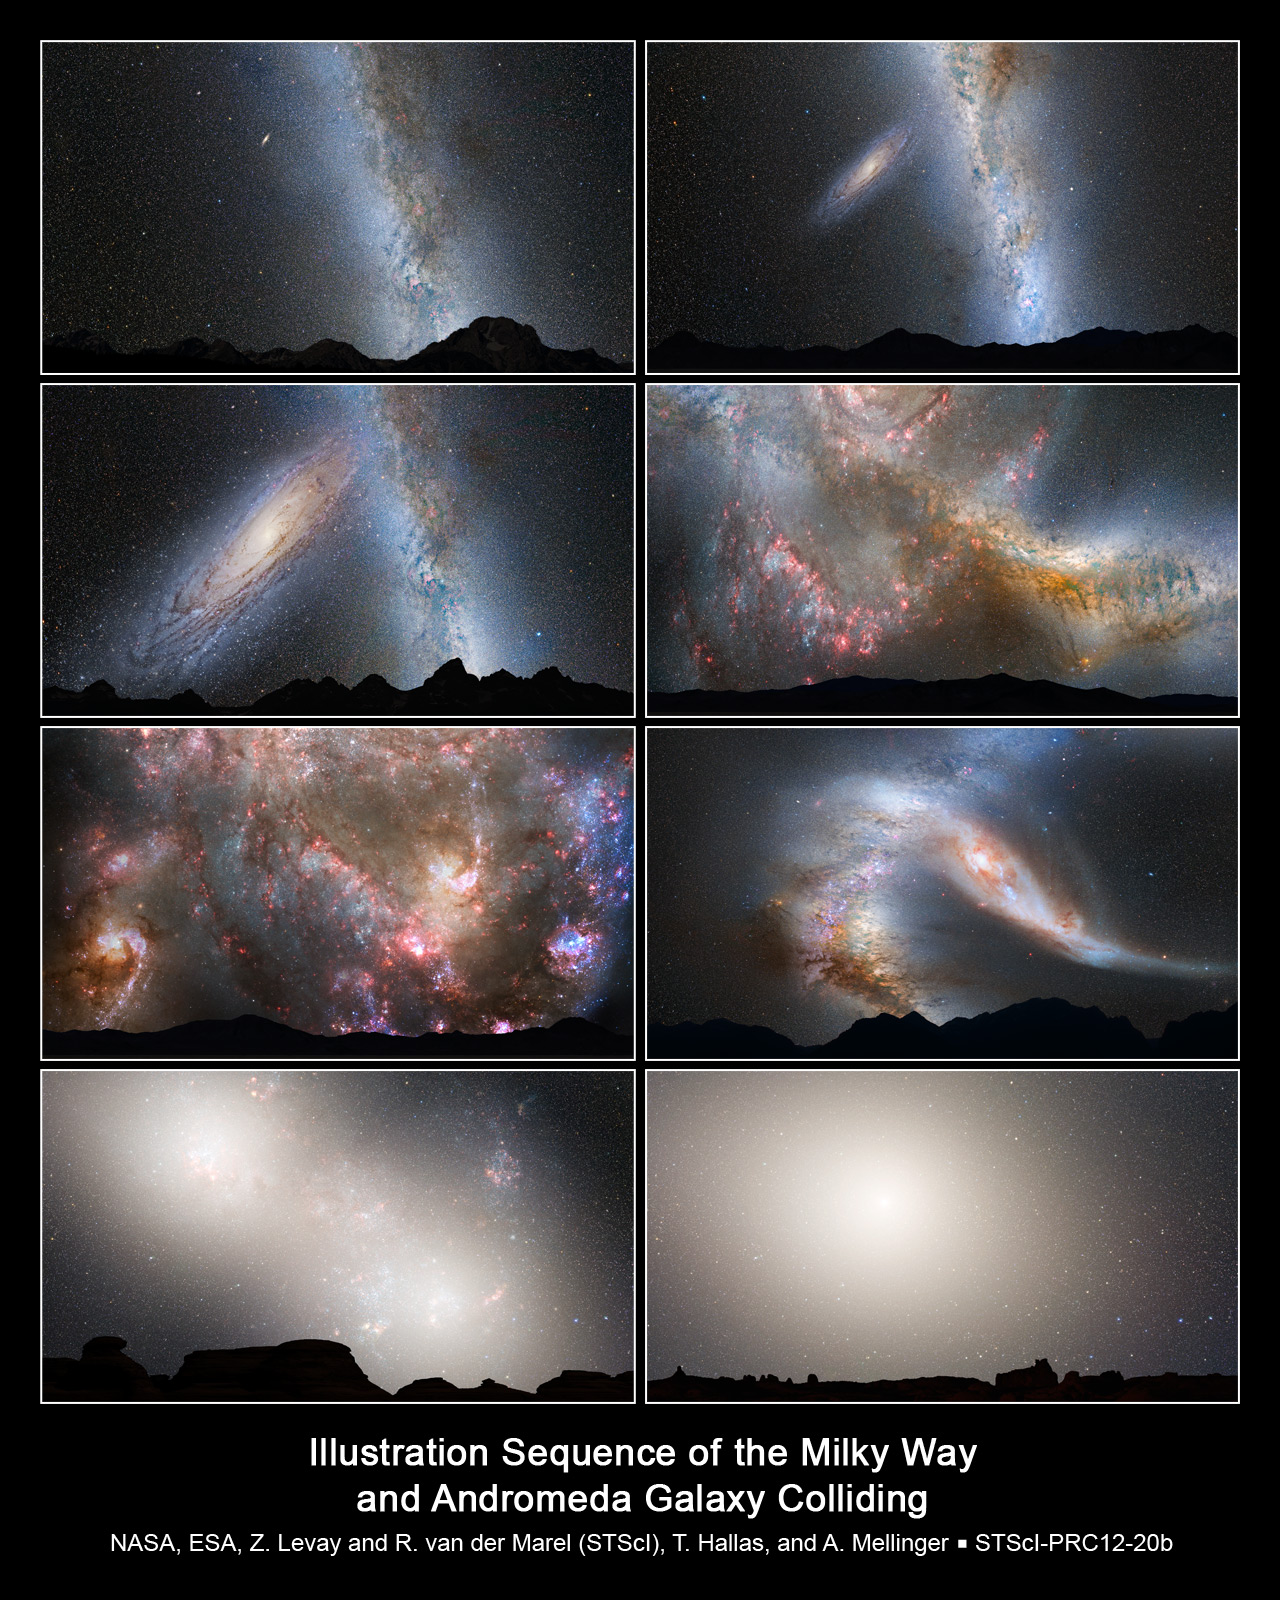 Series of photo illustrations showing merger between milky way and andromeda